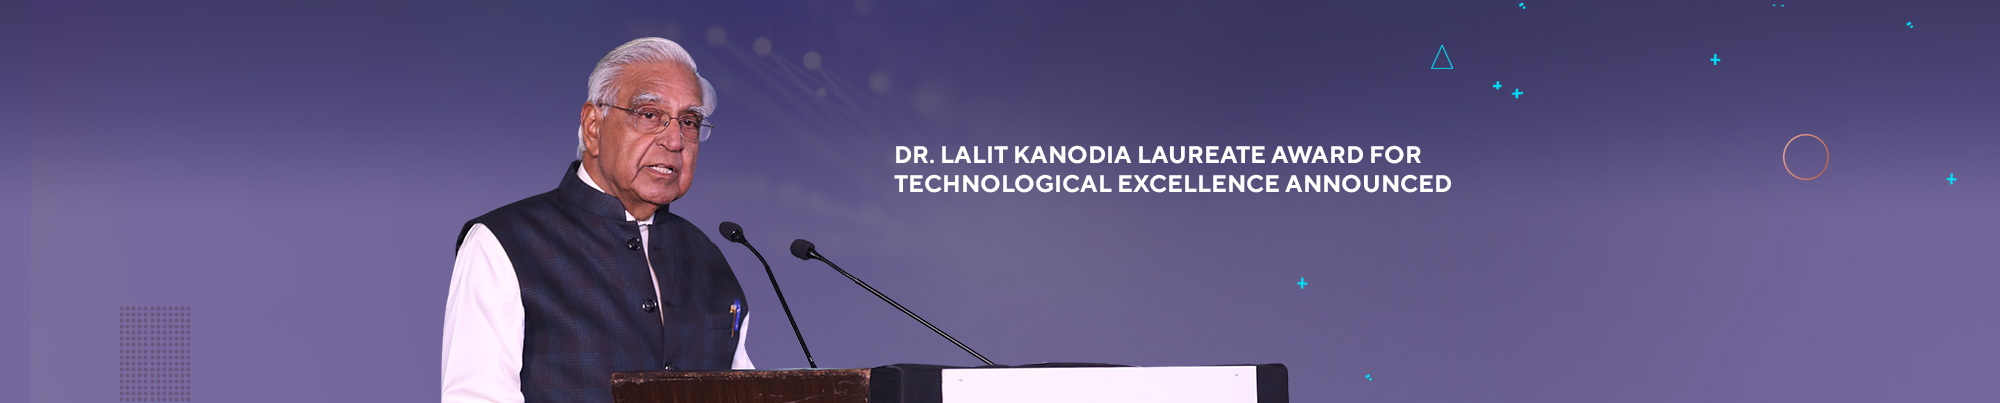 Dr. Lalit Kanodia Laureate Awards For Technology Exccellence